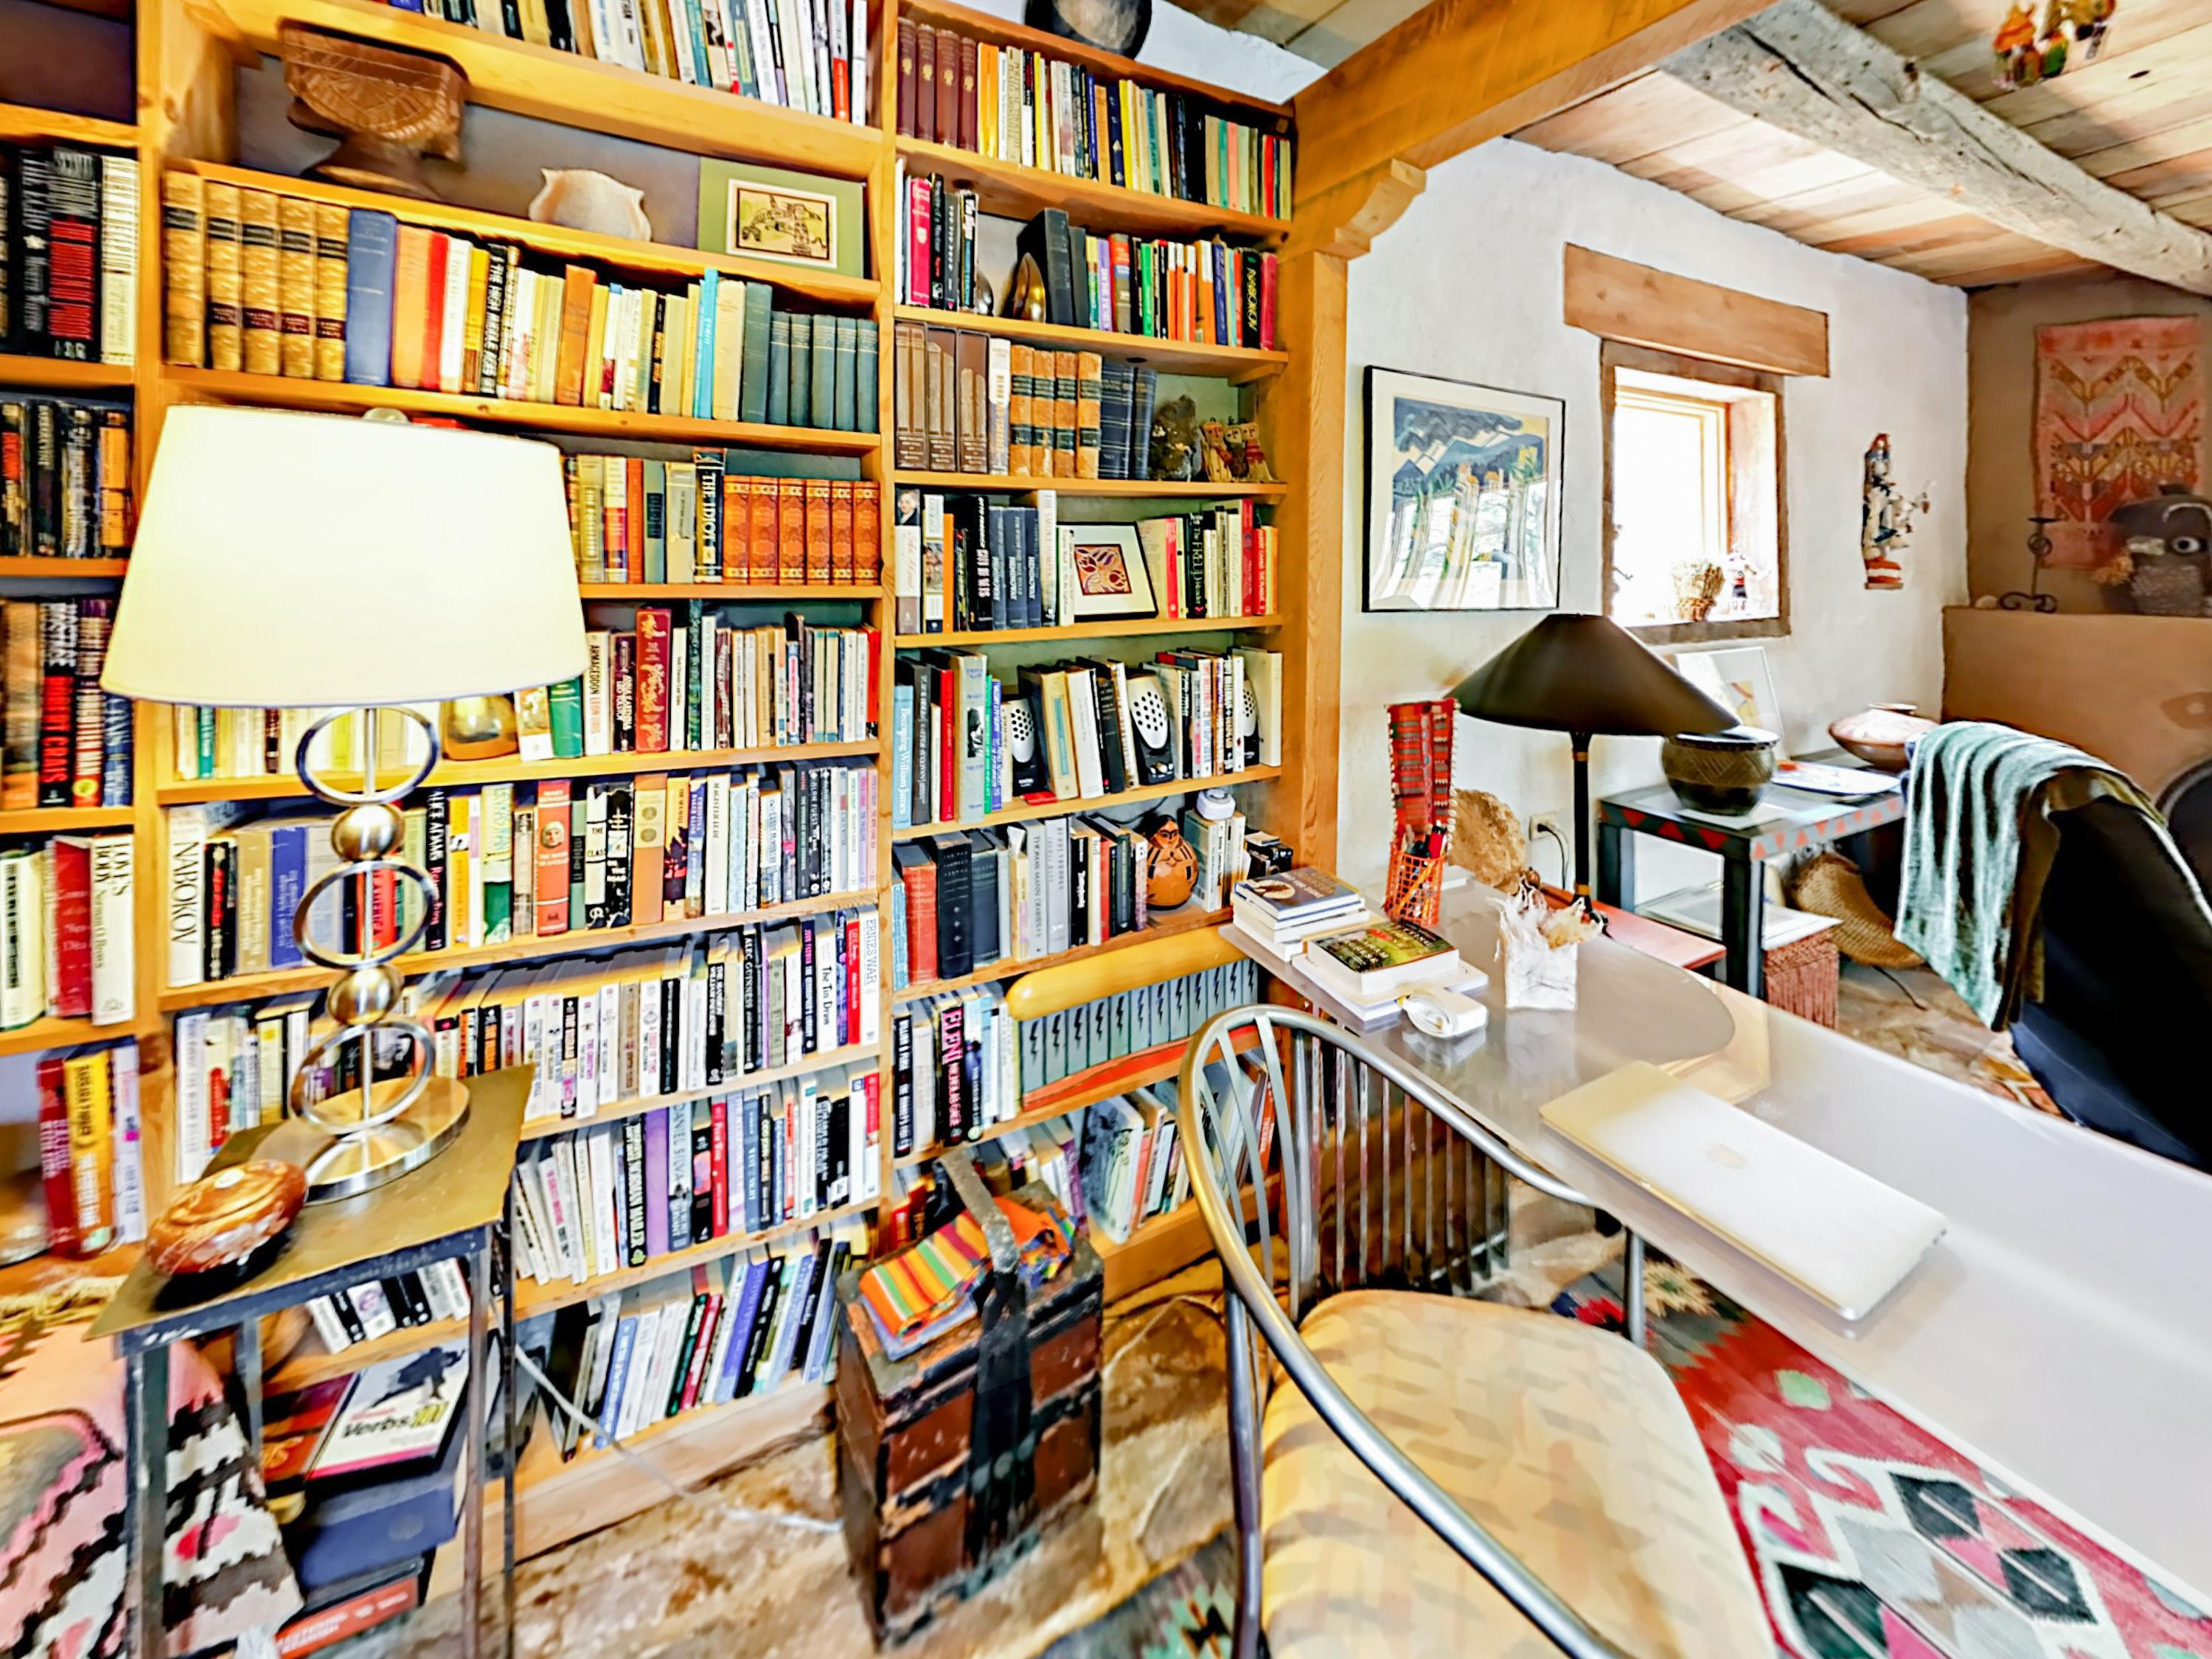 The master bedroom includes an office nook filled with books.